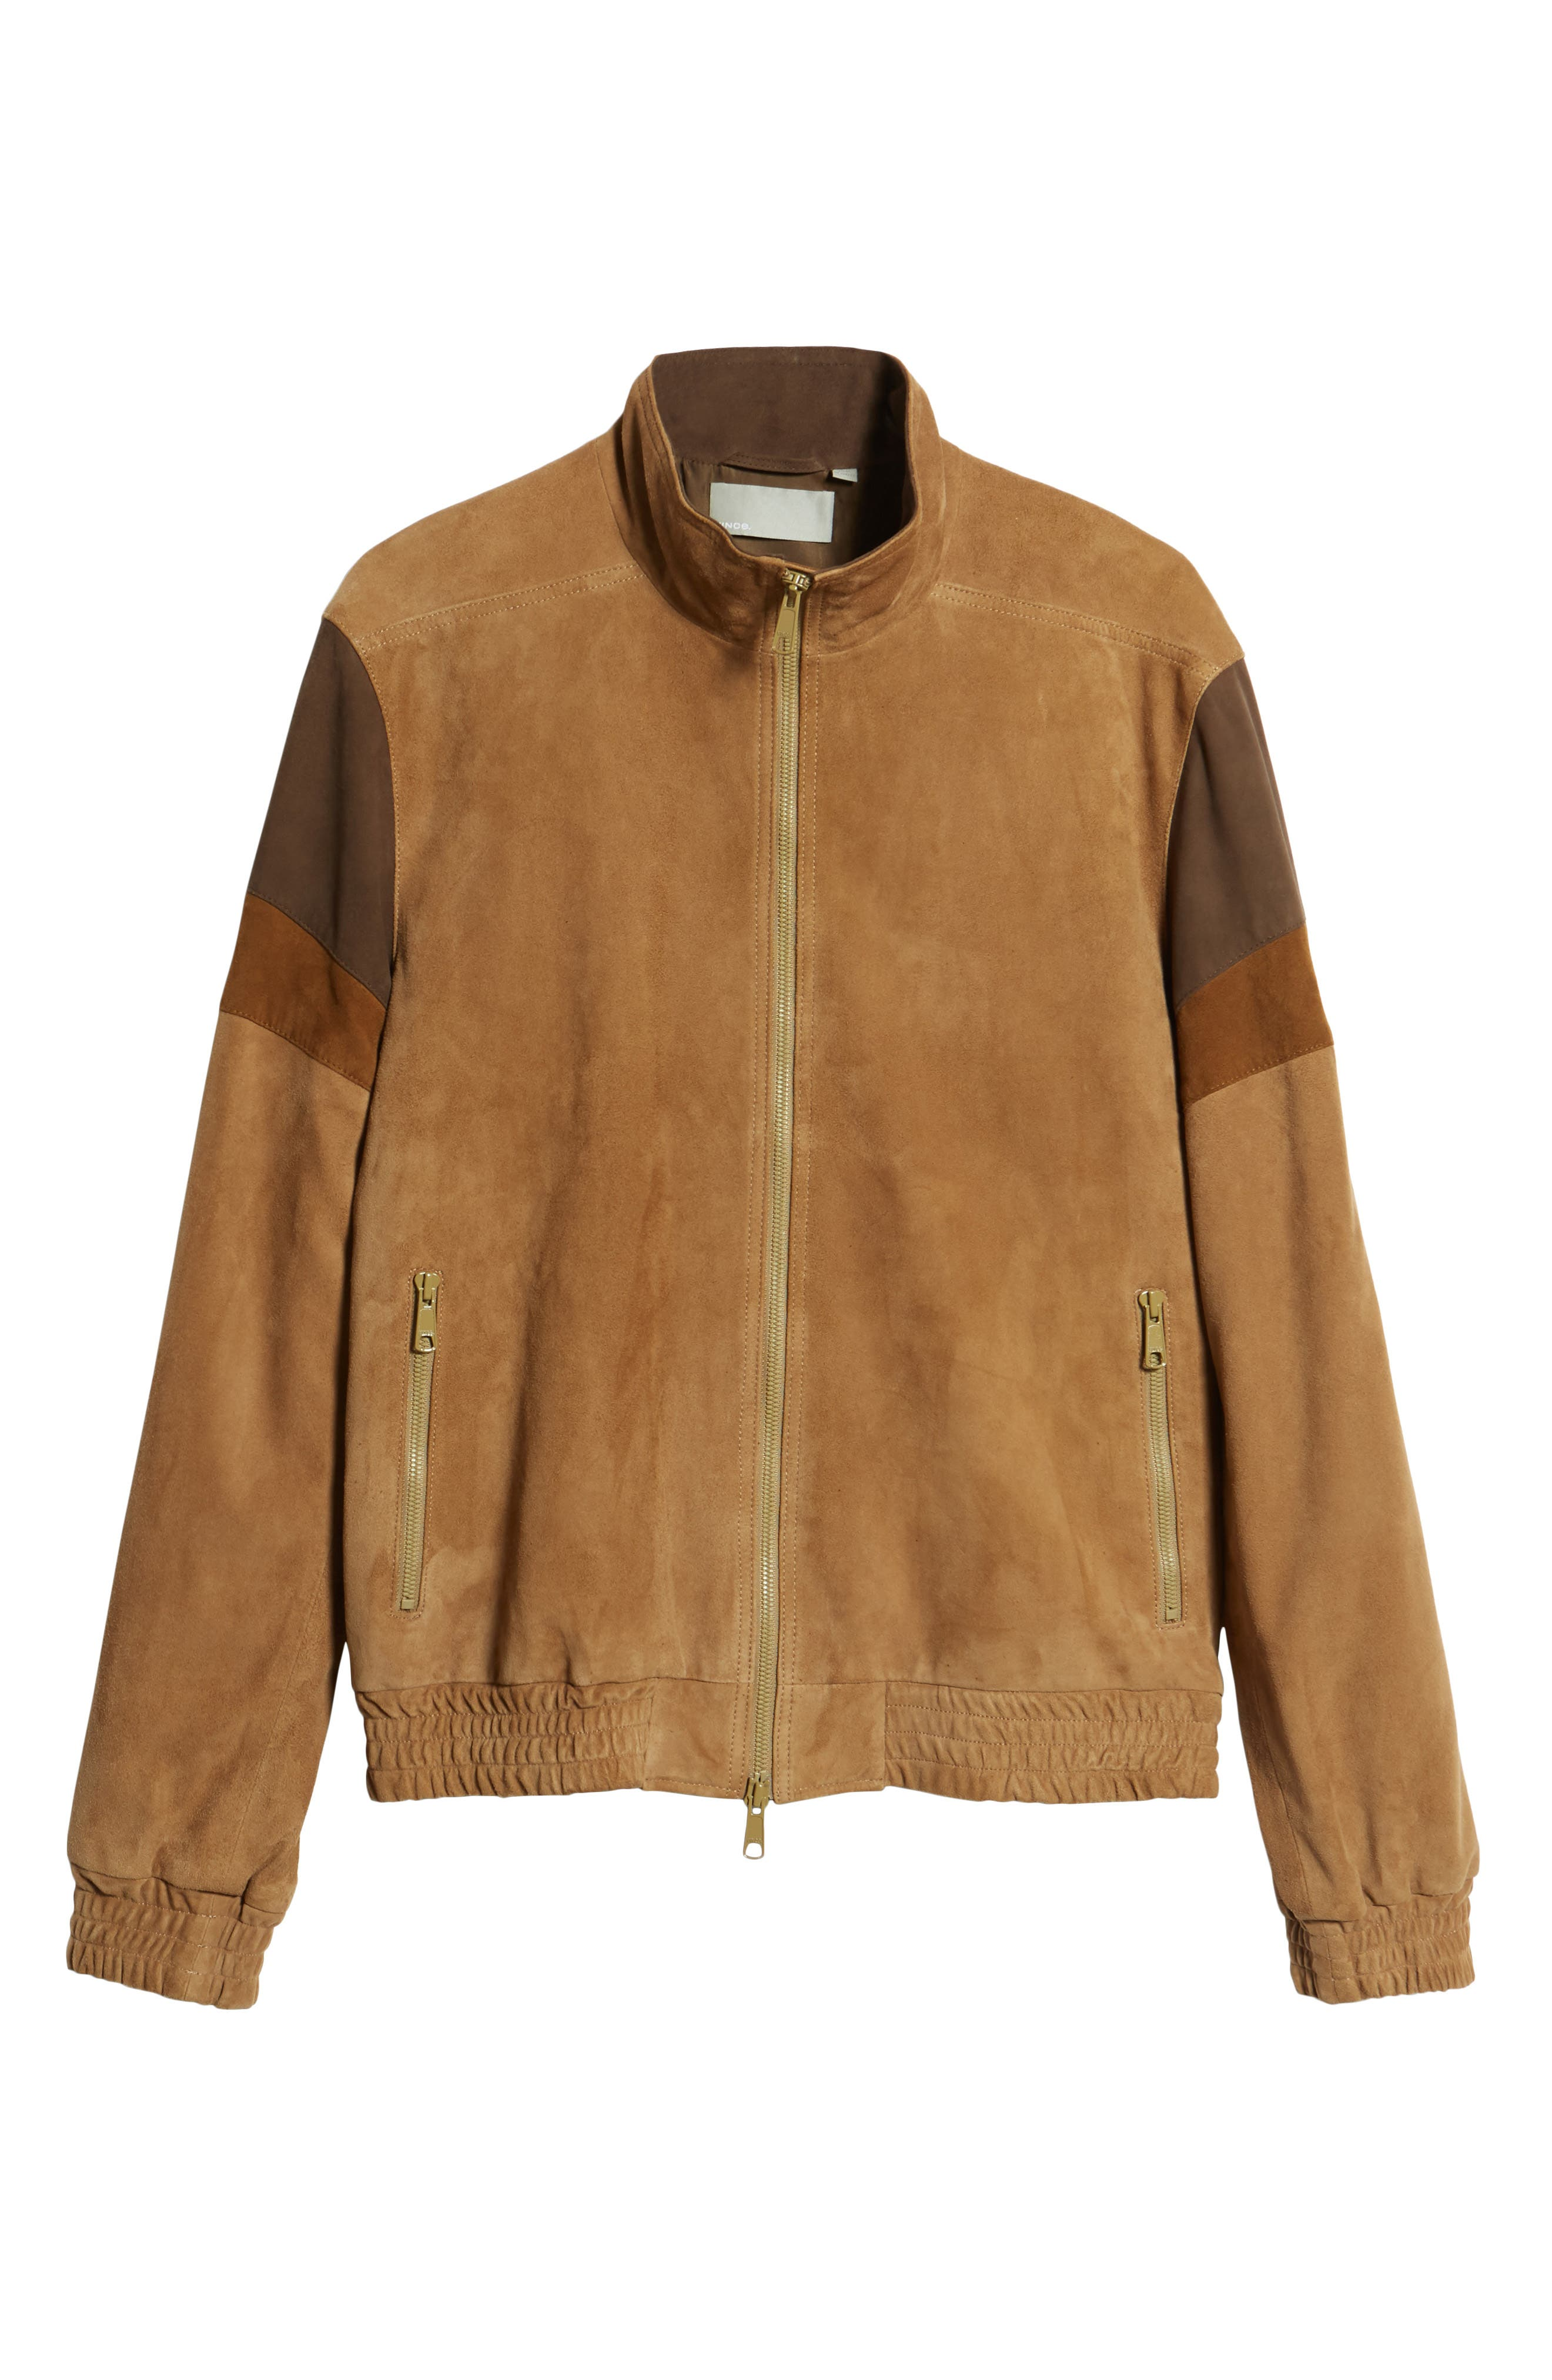 Colorblock Leather Track Jacket,                             Alternate thumbnail 5, color,                             250